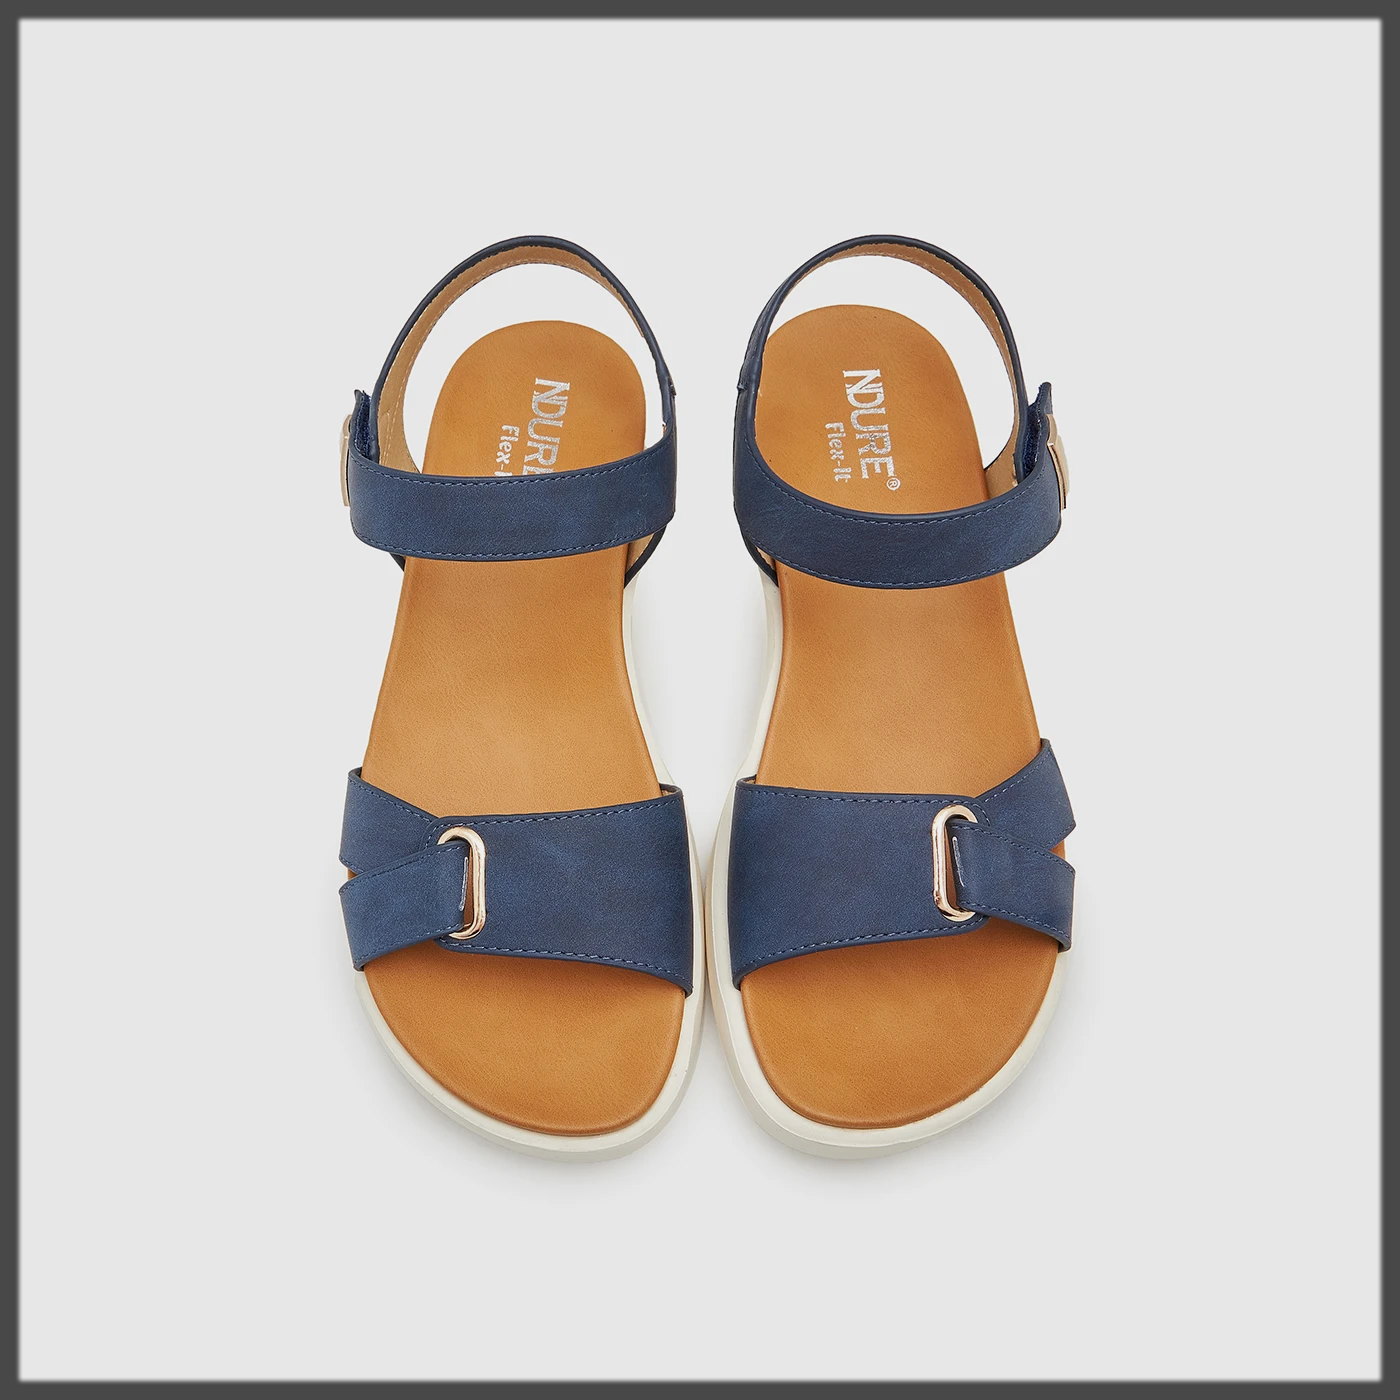 Buckled Sandals for Women